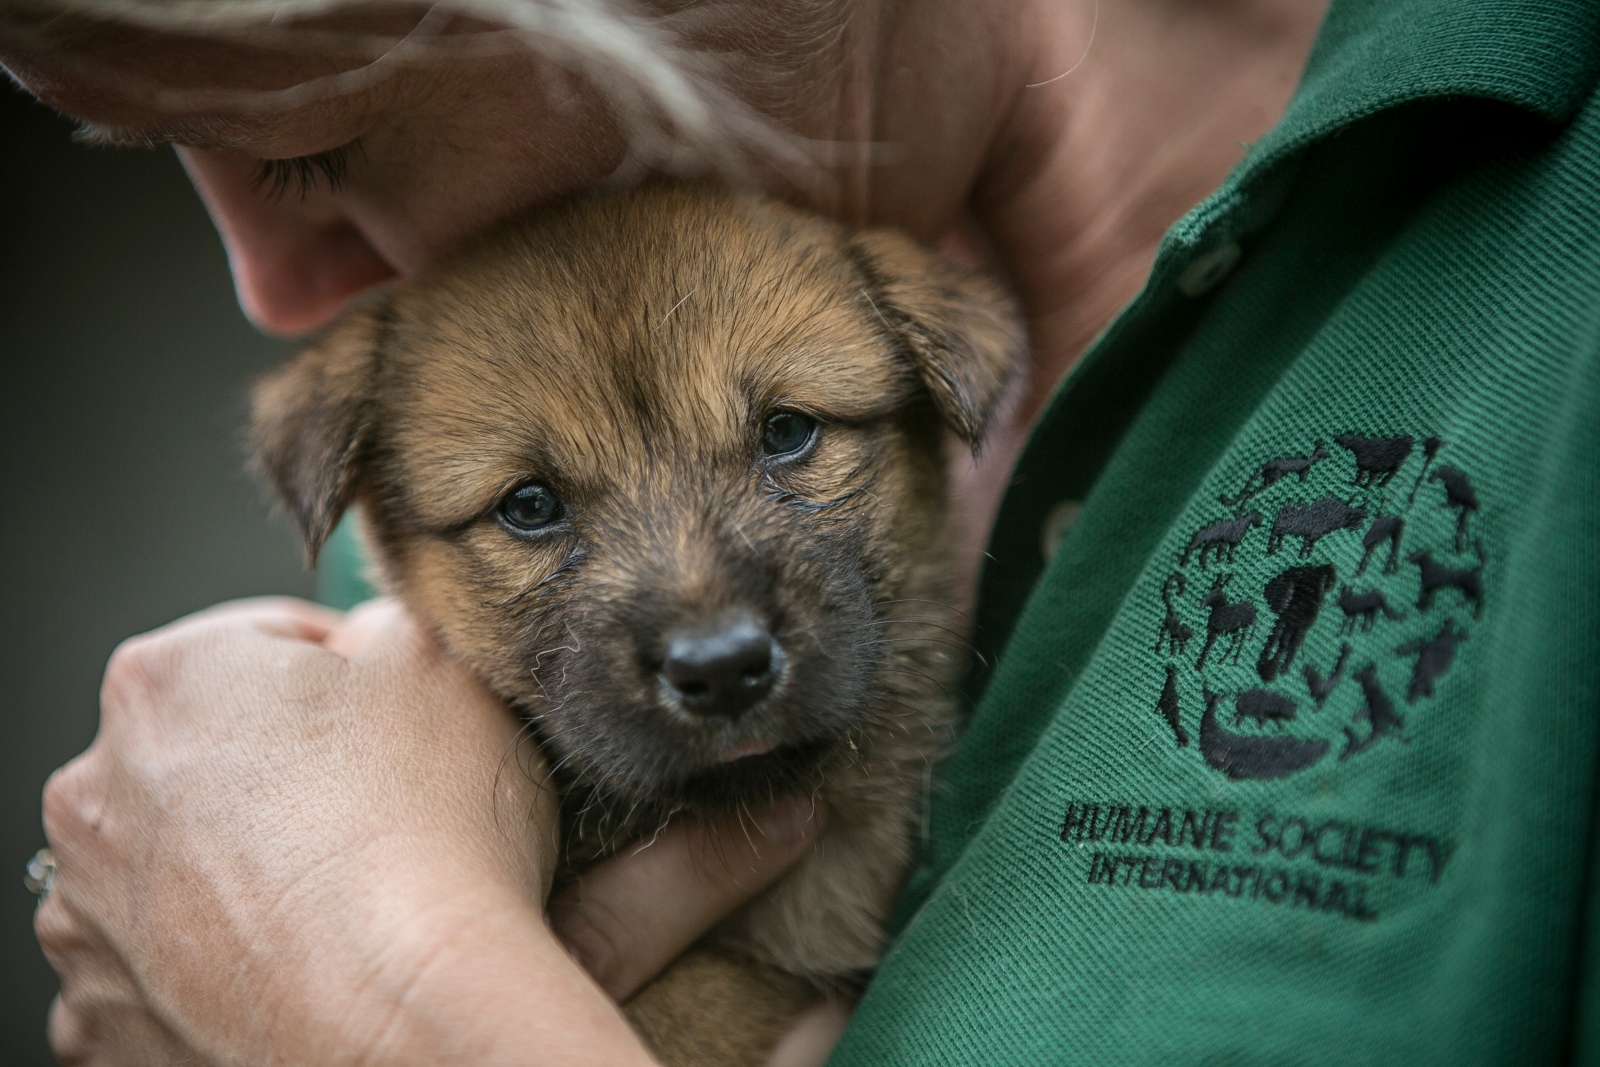 Puppy saved from death in South Korea